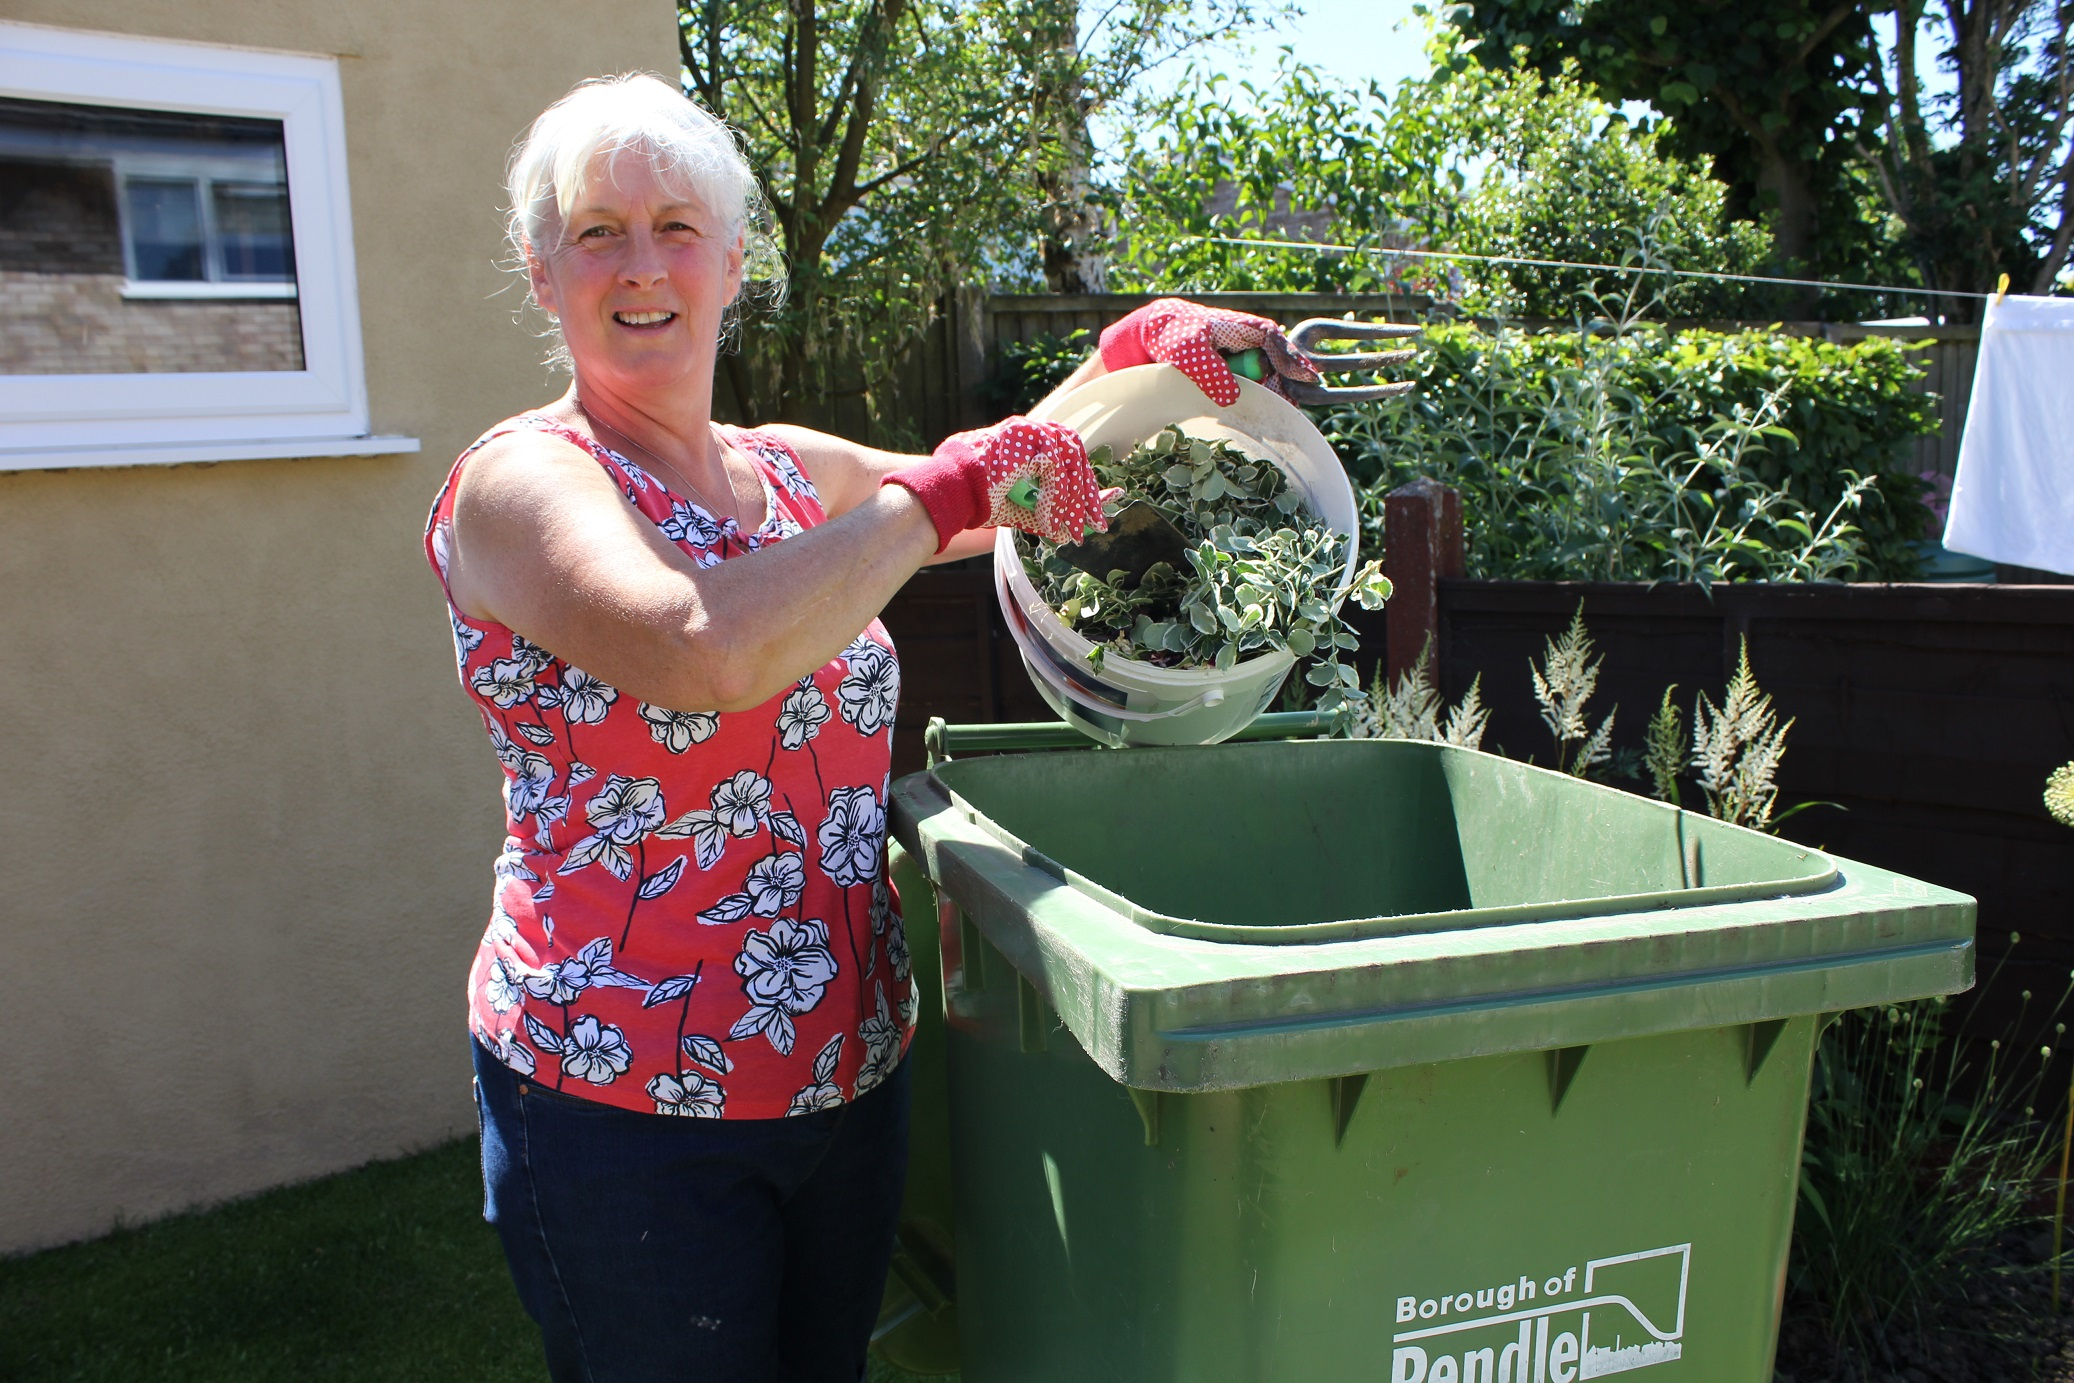 Don't forget to sign up for garden waste collections!